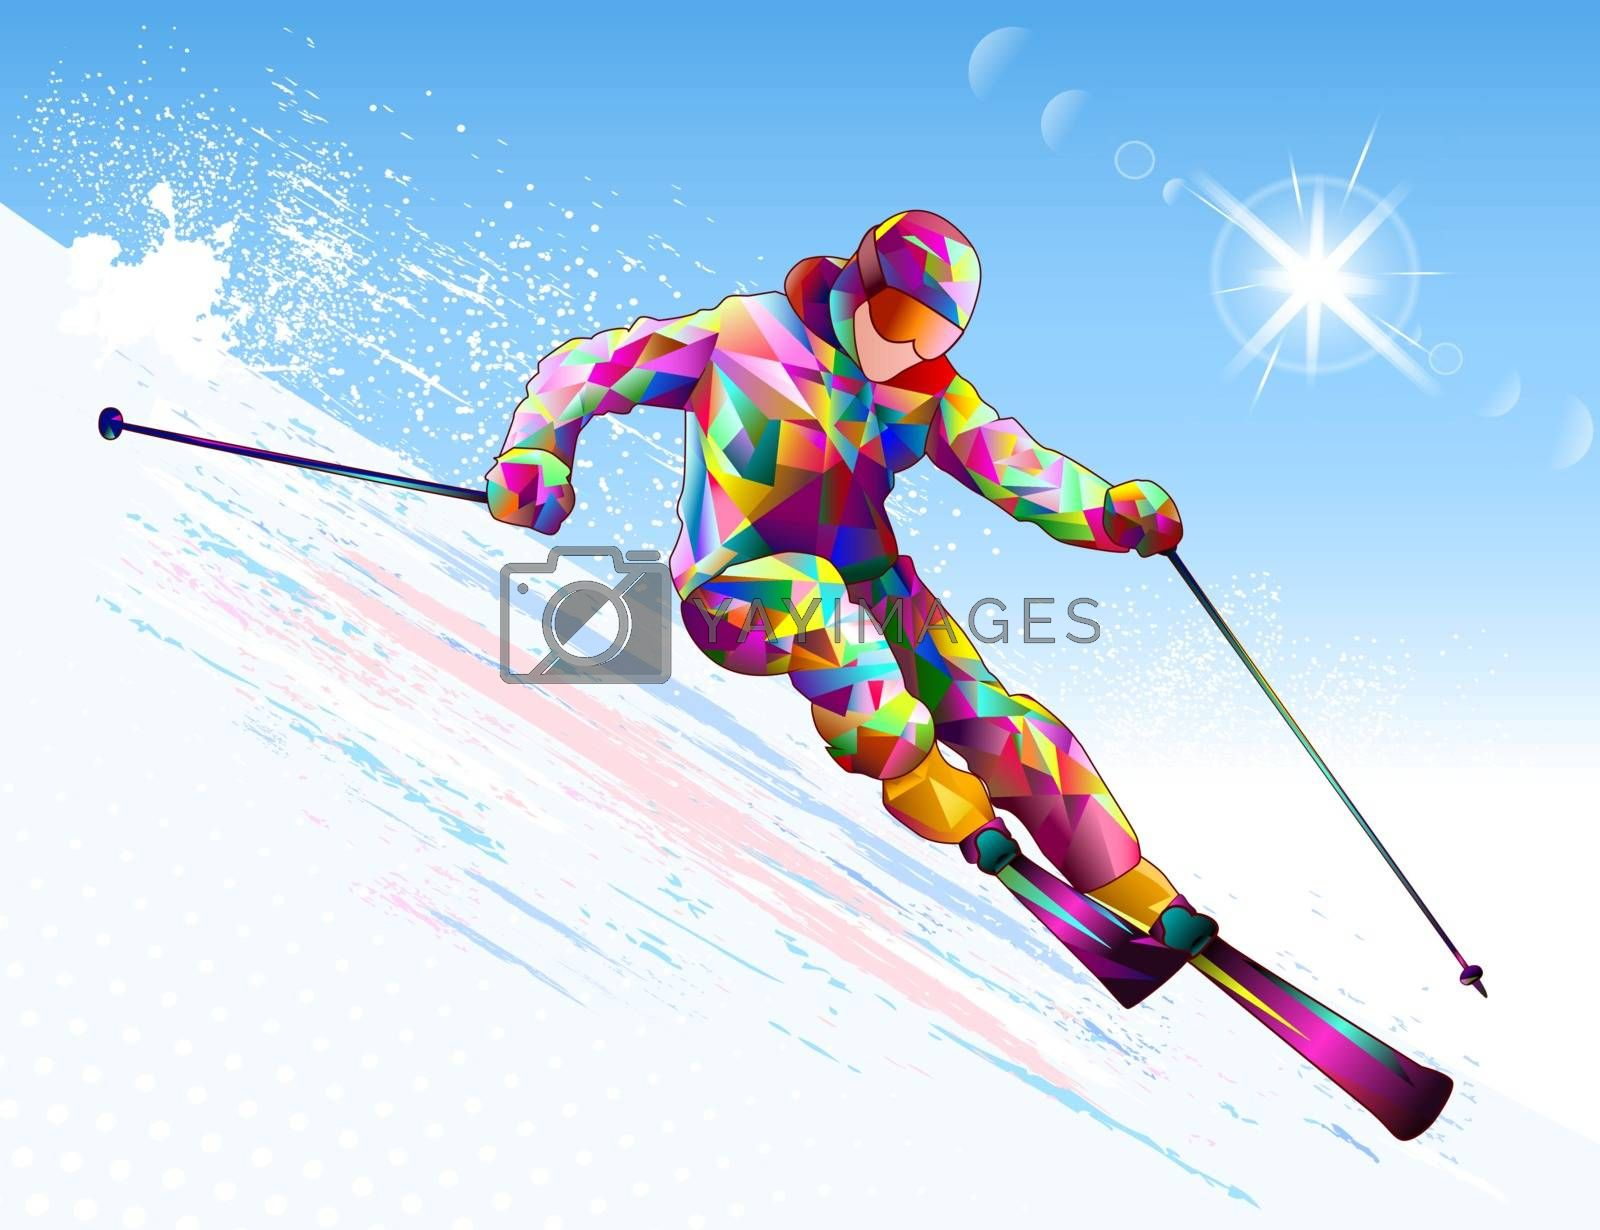 A male skier goes down on skis against the backdrop of the sky and the sun. Alpine skier on a snowy slope.